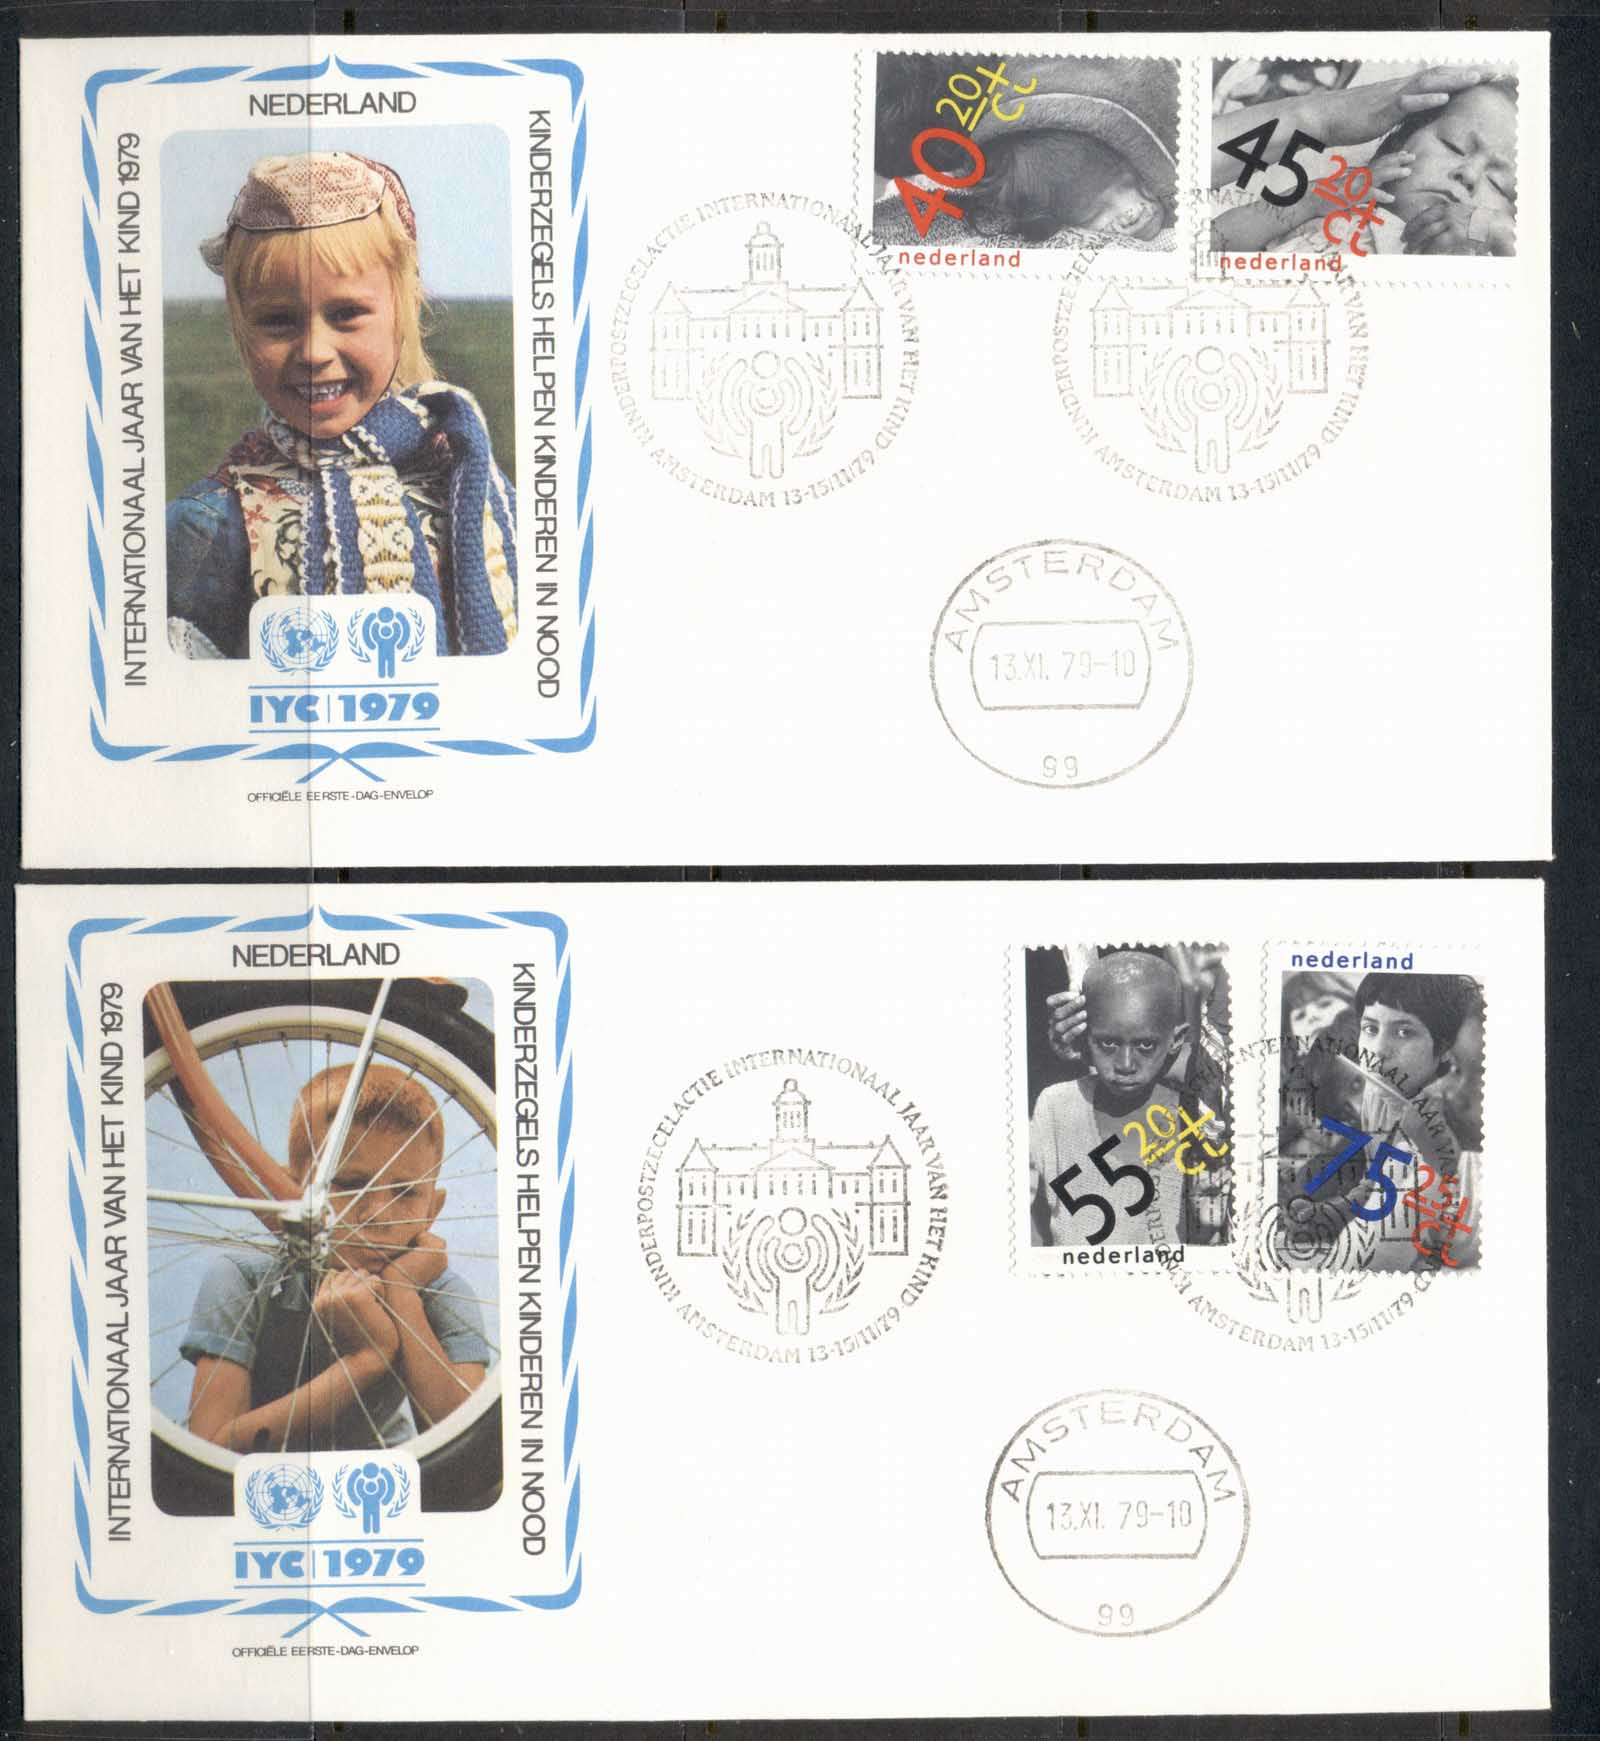 Netherlands 1979 IYC International year of the Child 2x FDC